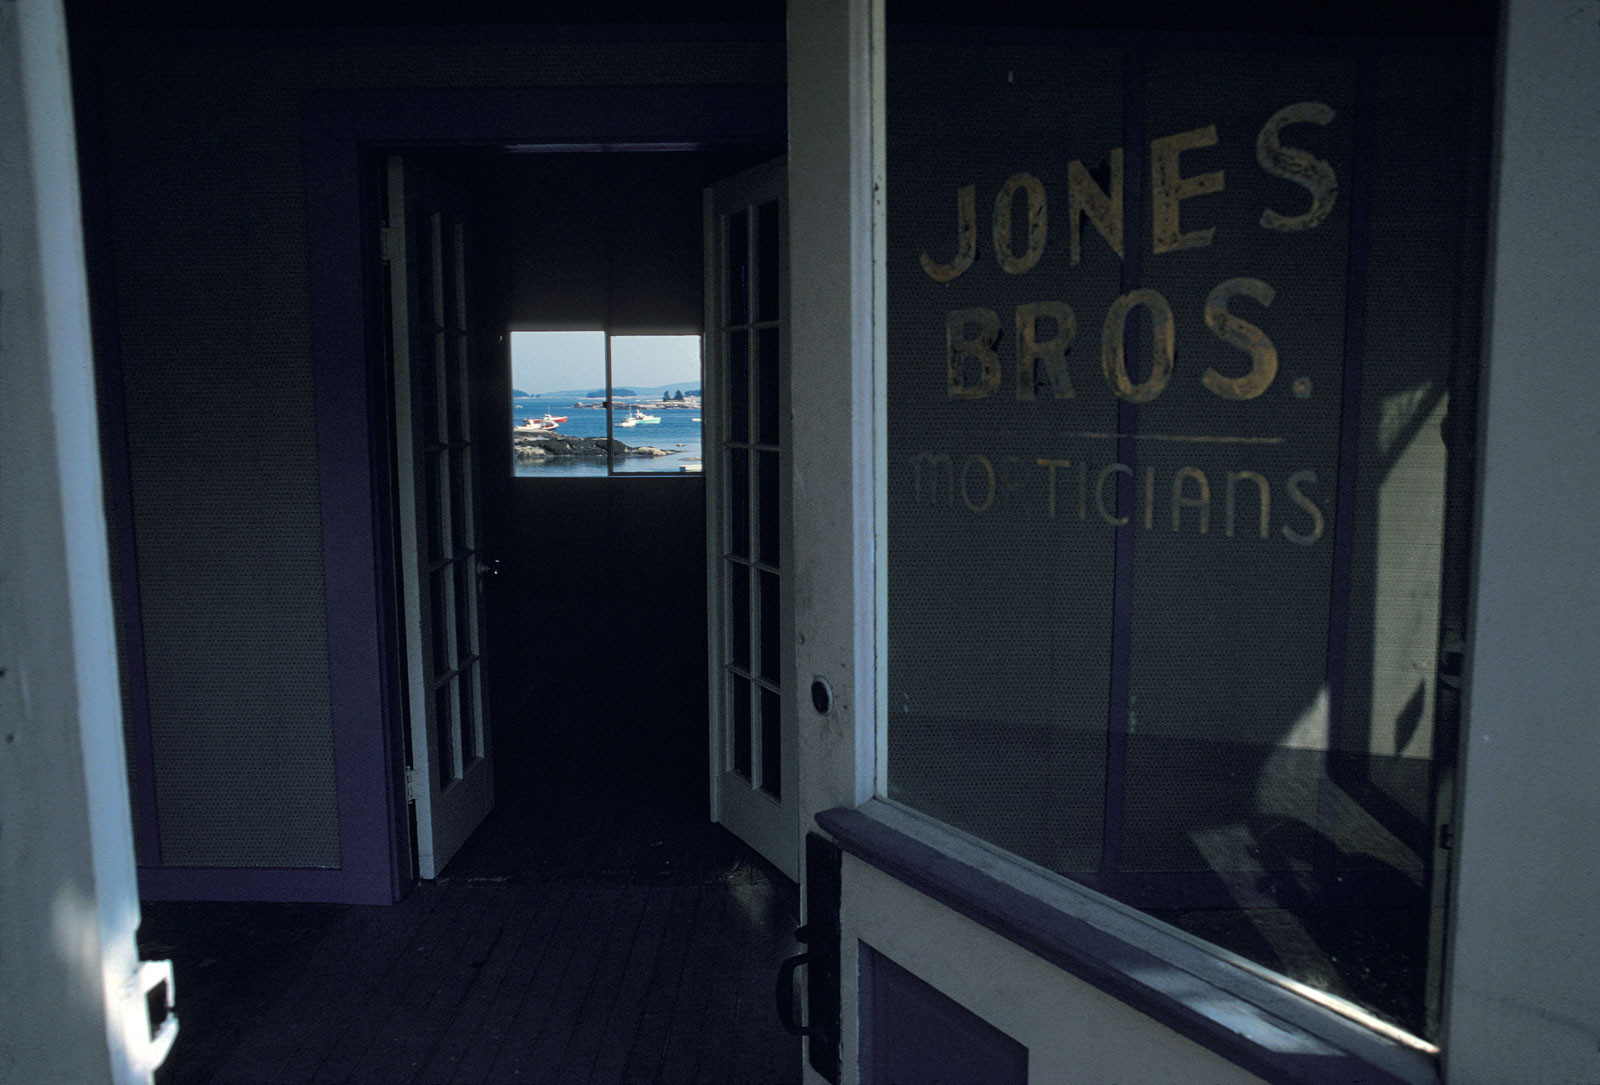 Jones Bros, photo by Joel Mason